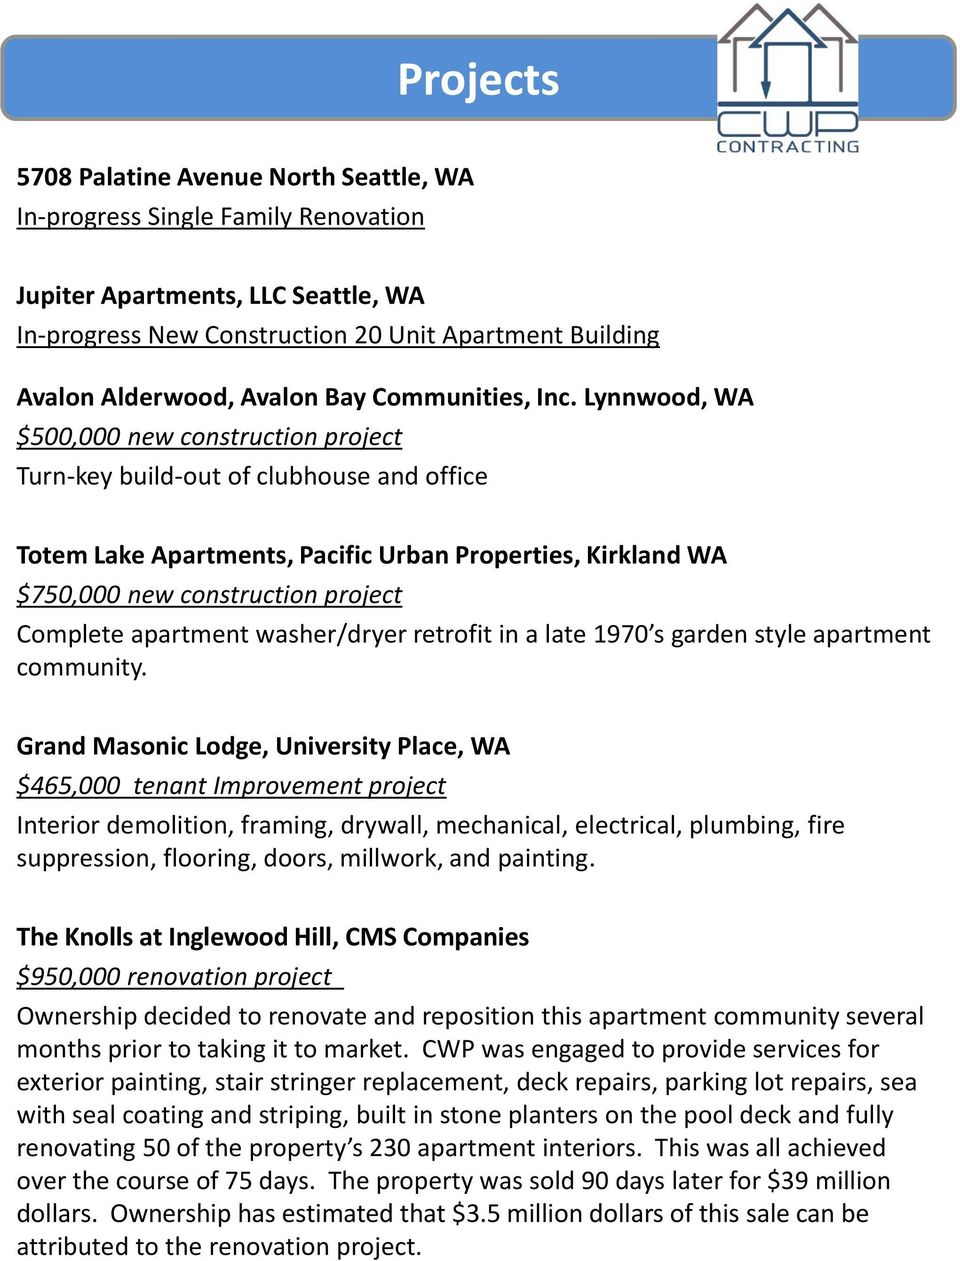 Lynnwood, WA $500,000 new construction project Turn-key build-out of clubhouse and office Totem Lake Apartments, Pacific Urban Properties, Kirkland WA $750,000 new construction project Complete